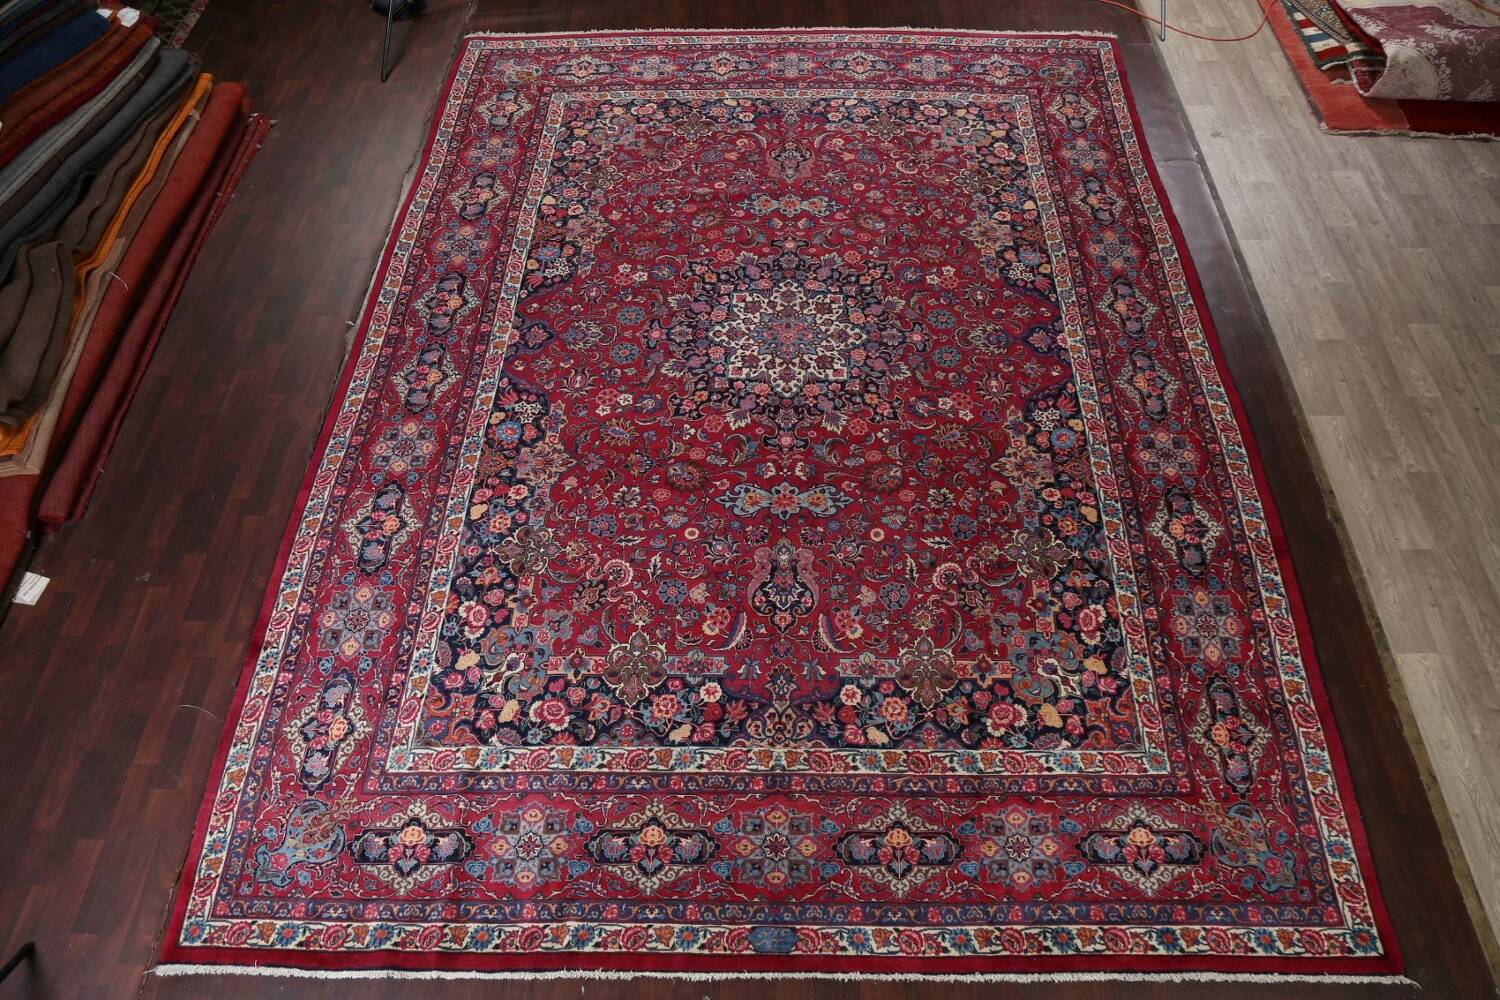 Antique Vegetable Dye Mood Persian Red Rug 11x15 image 2